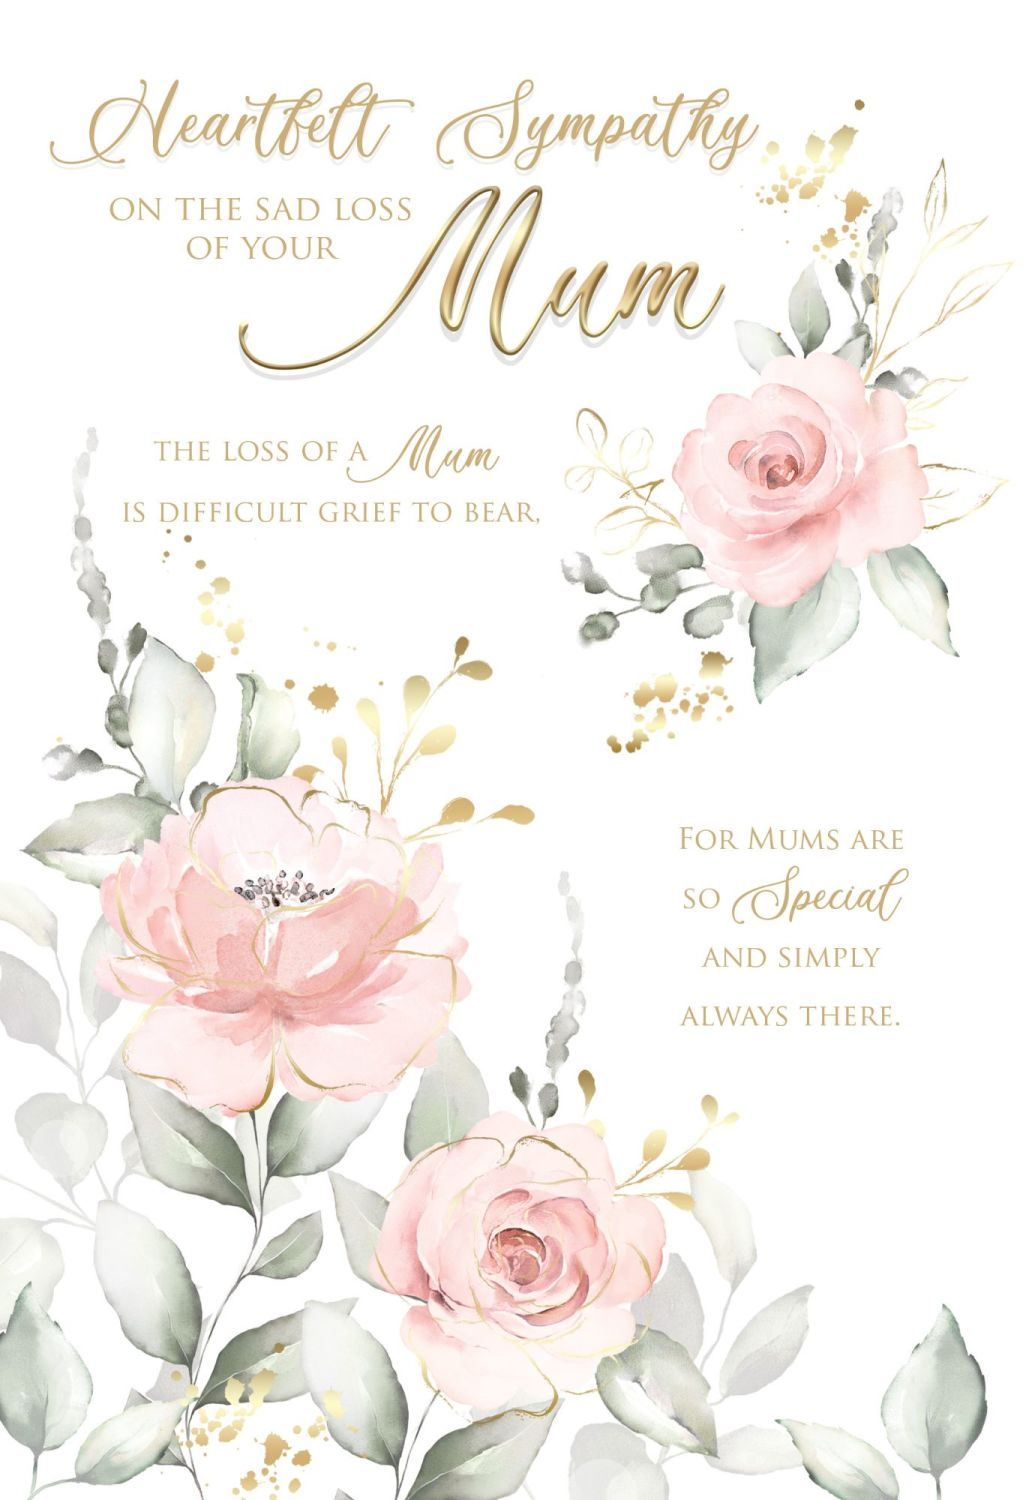 Heartfelt Sympathy Card -  DIFFICULT Grief To BEAR - LOSS Of MUM Cards - SY